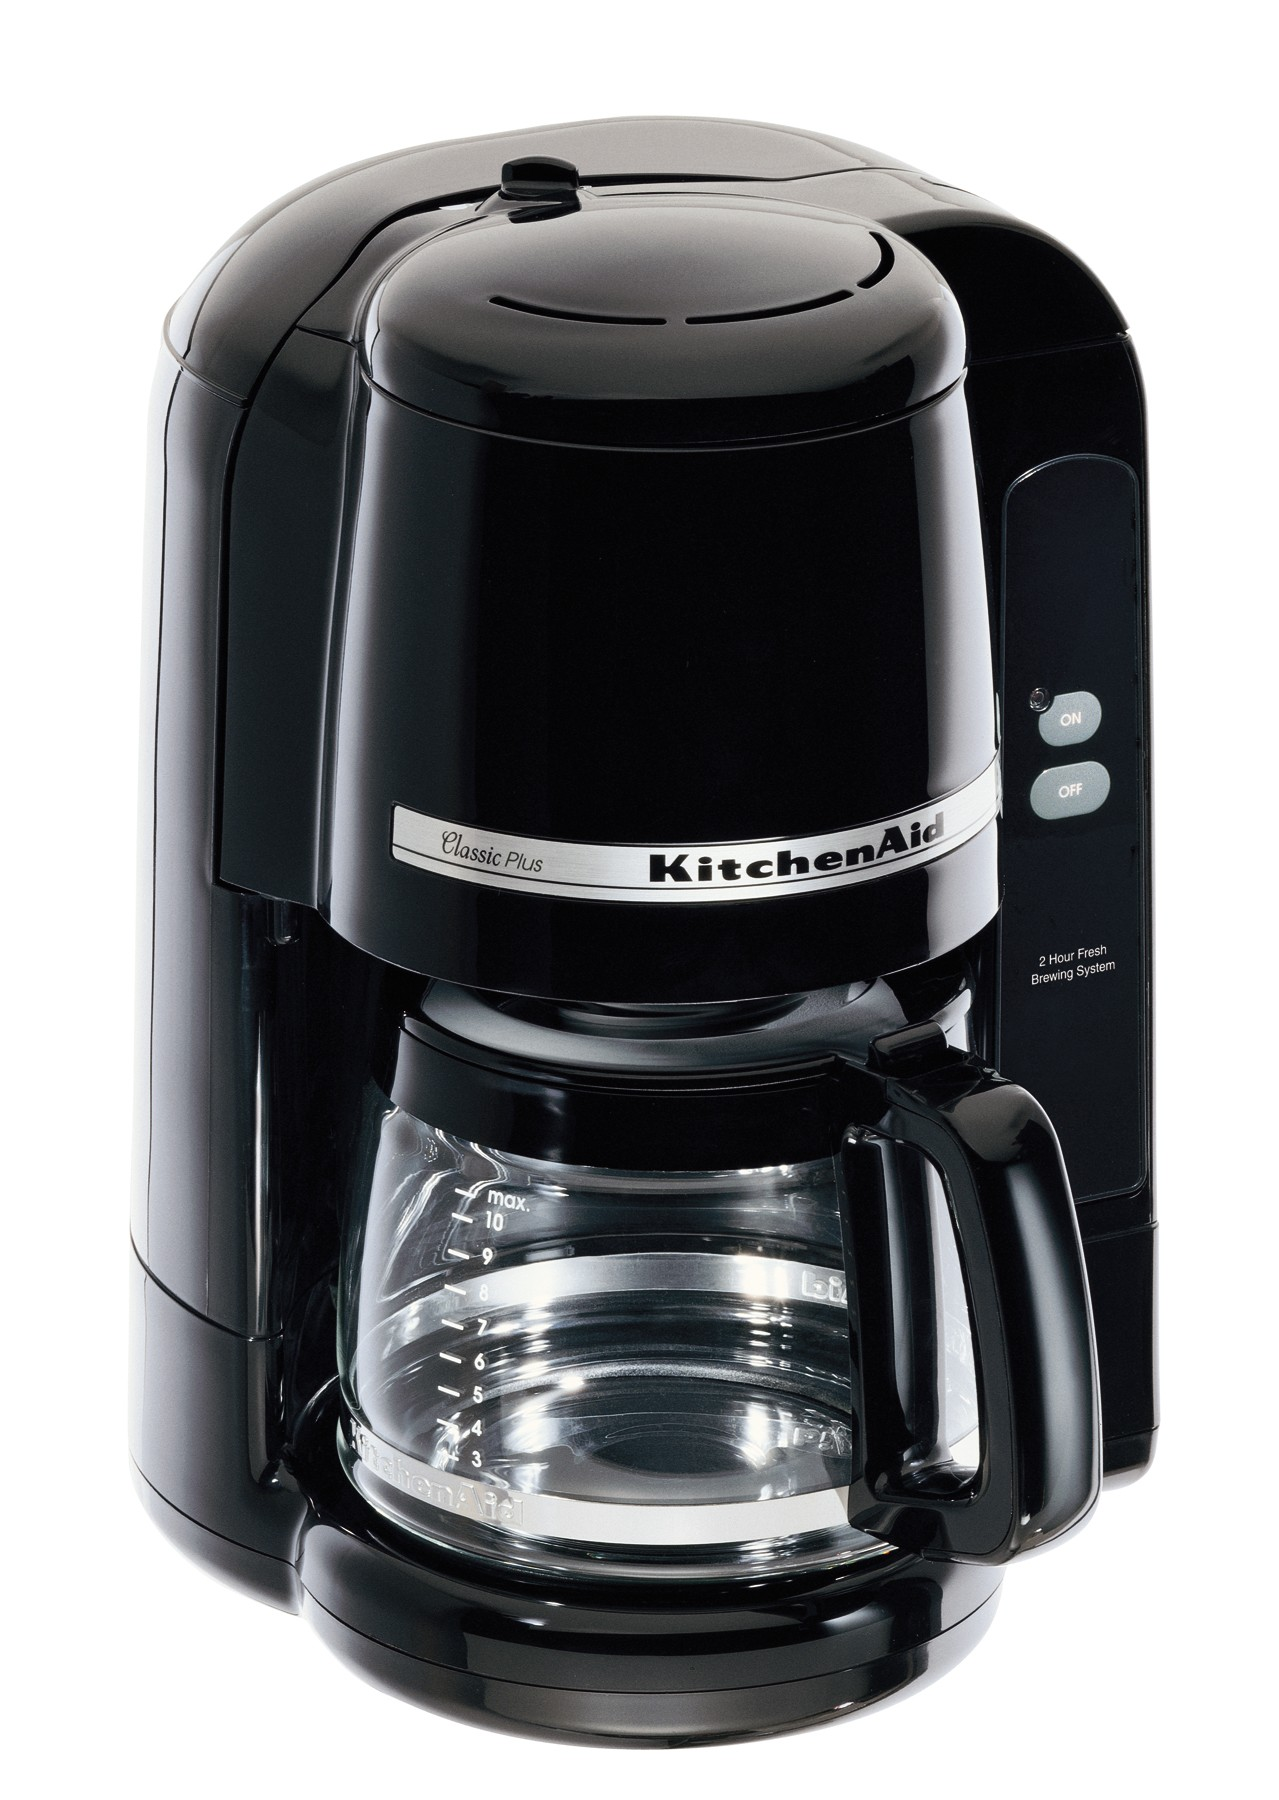 Kitchenaid Coffee Maker Black Friday : CPSC, Whirlpool Announce Recall of KitchenAid Coffeemakers CPSC.gov